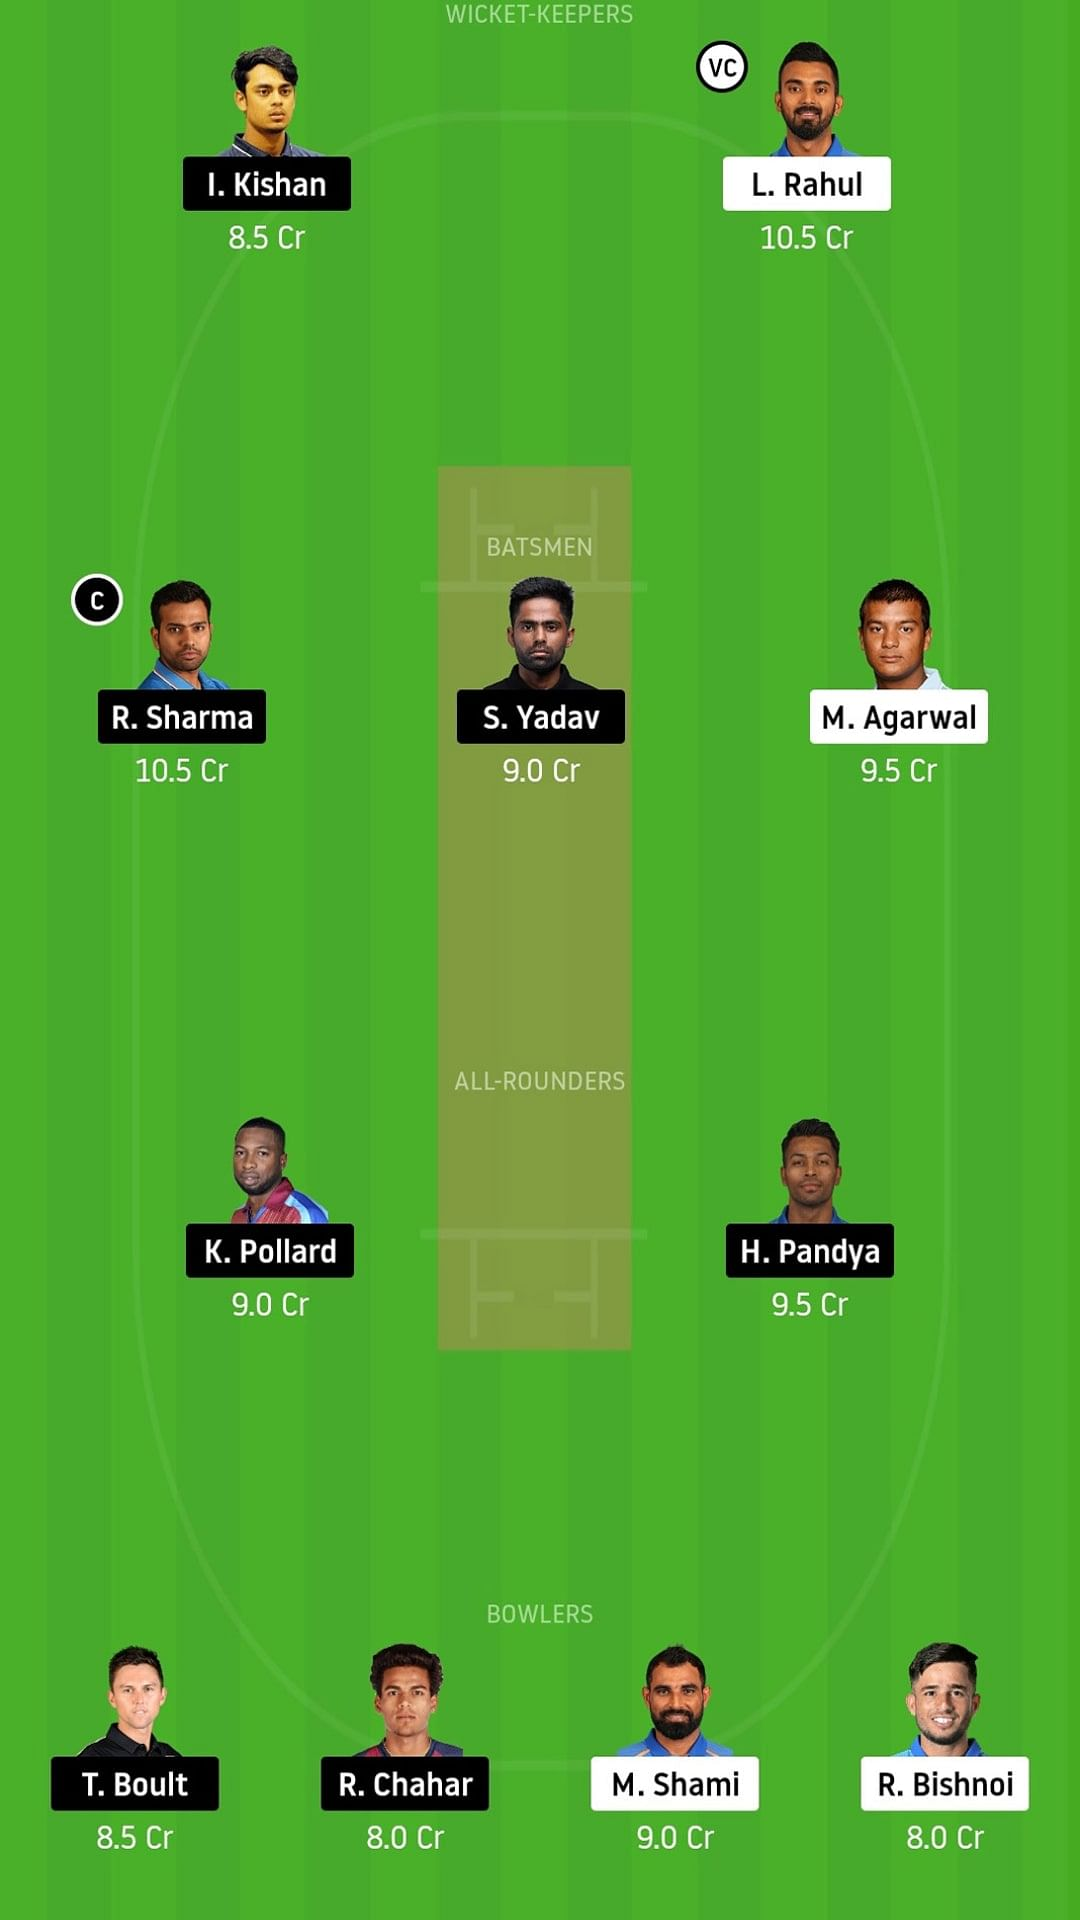 My Dream11 Team